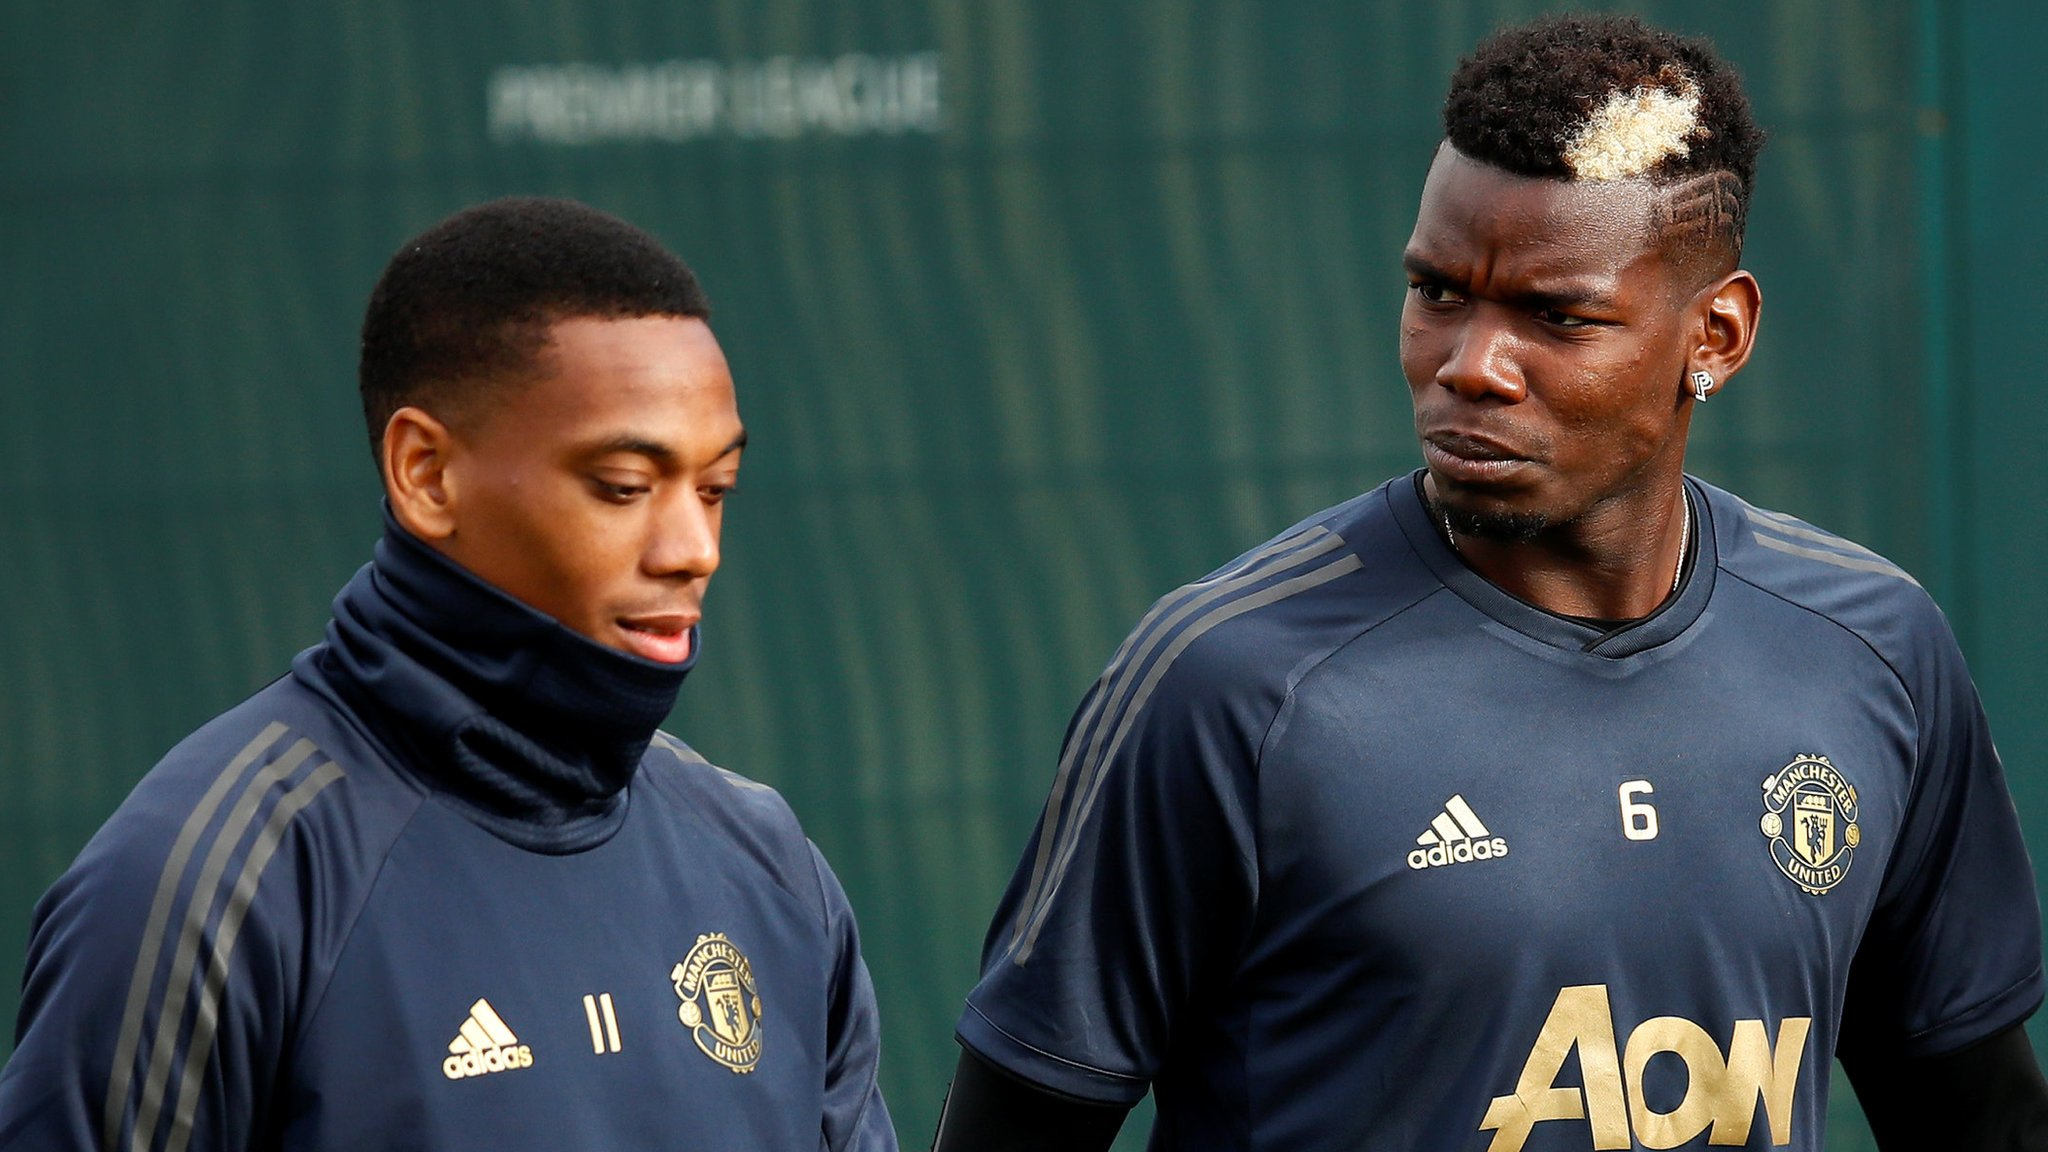 France: Paul Pogba, Anthony Martial, Benjamin Mendy and Alexandre Lacazette out of squad